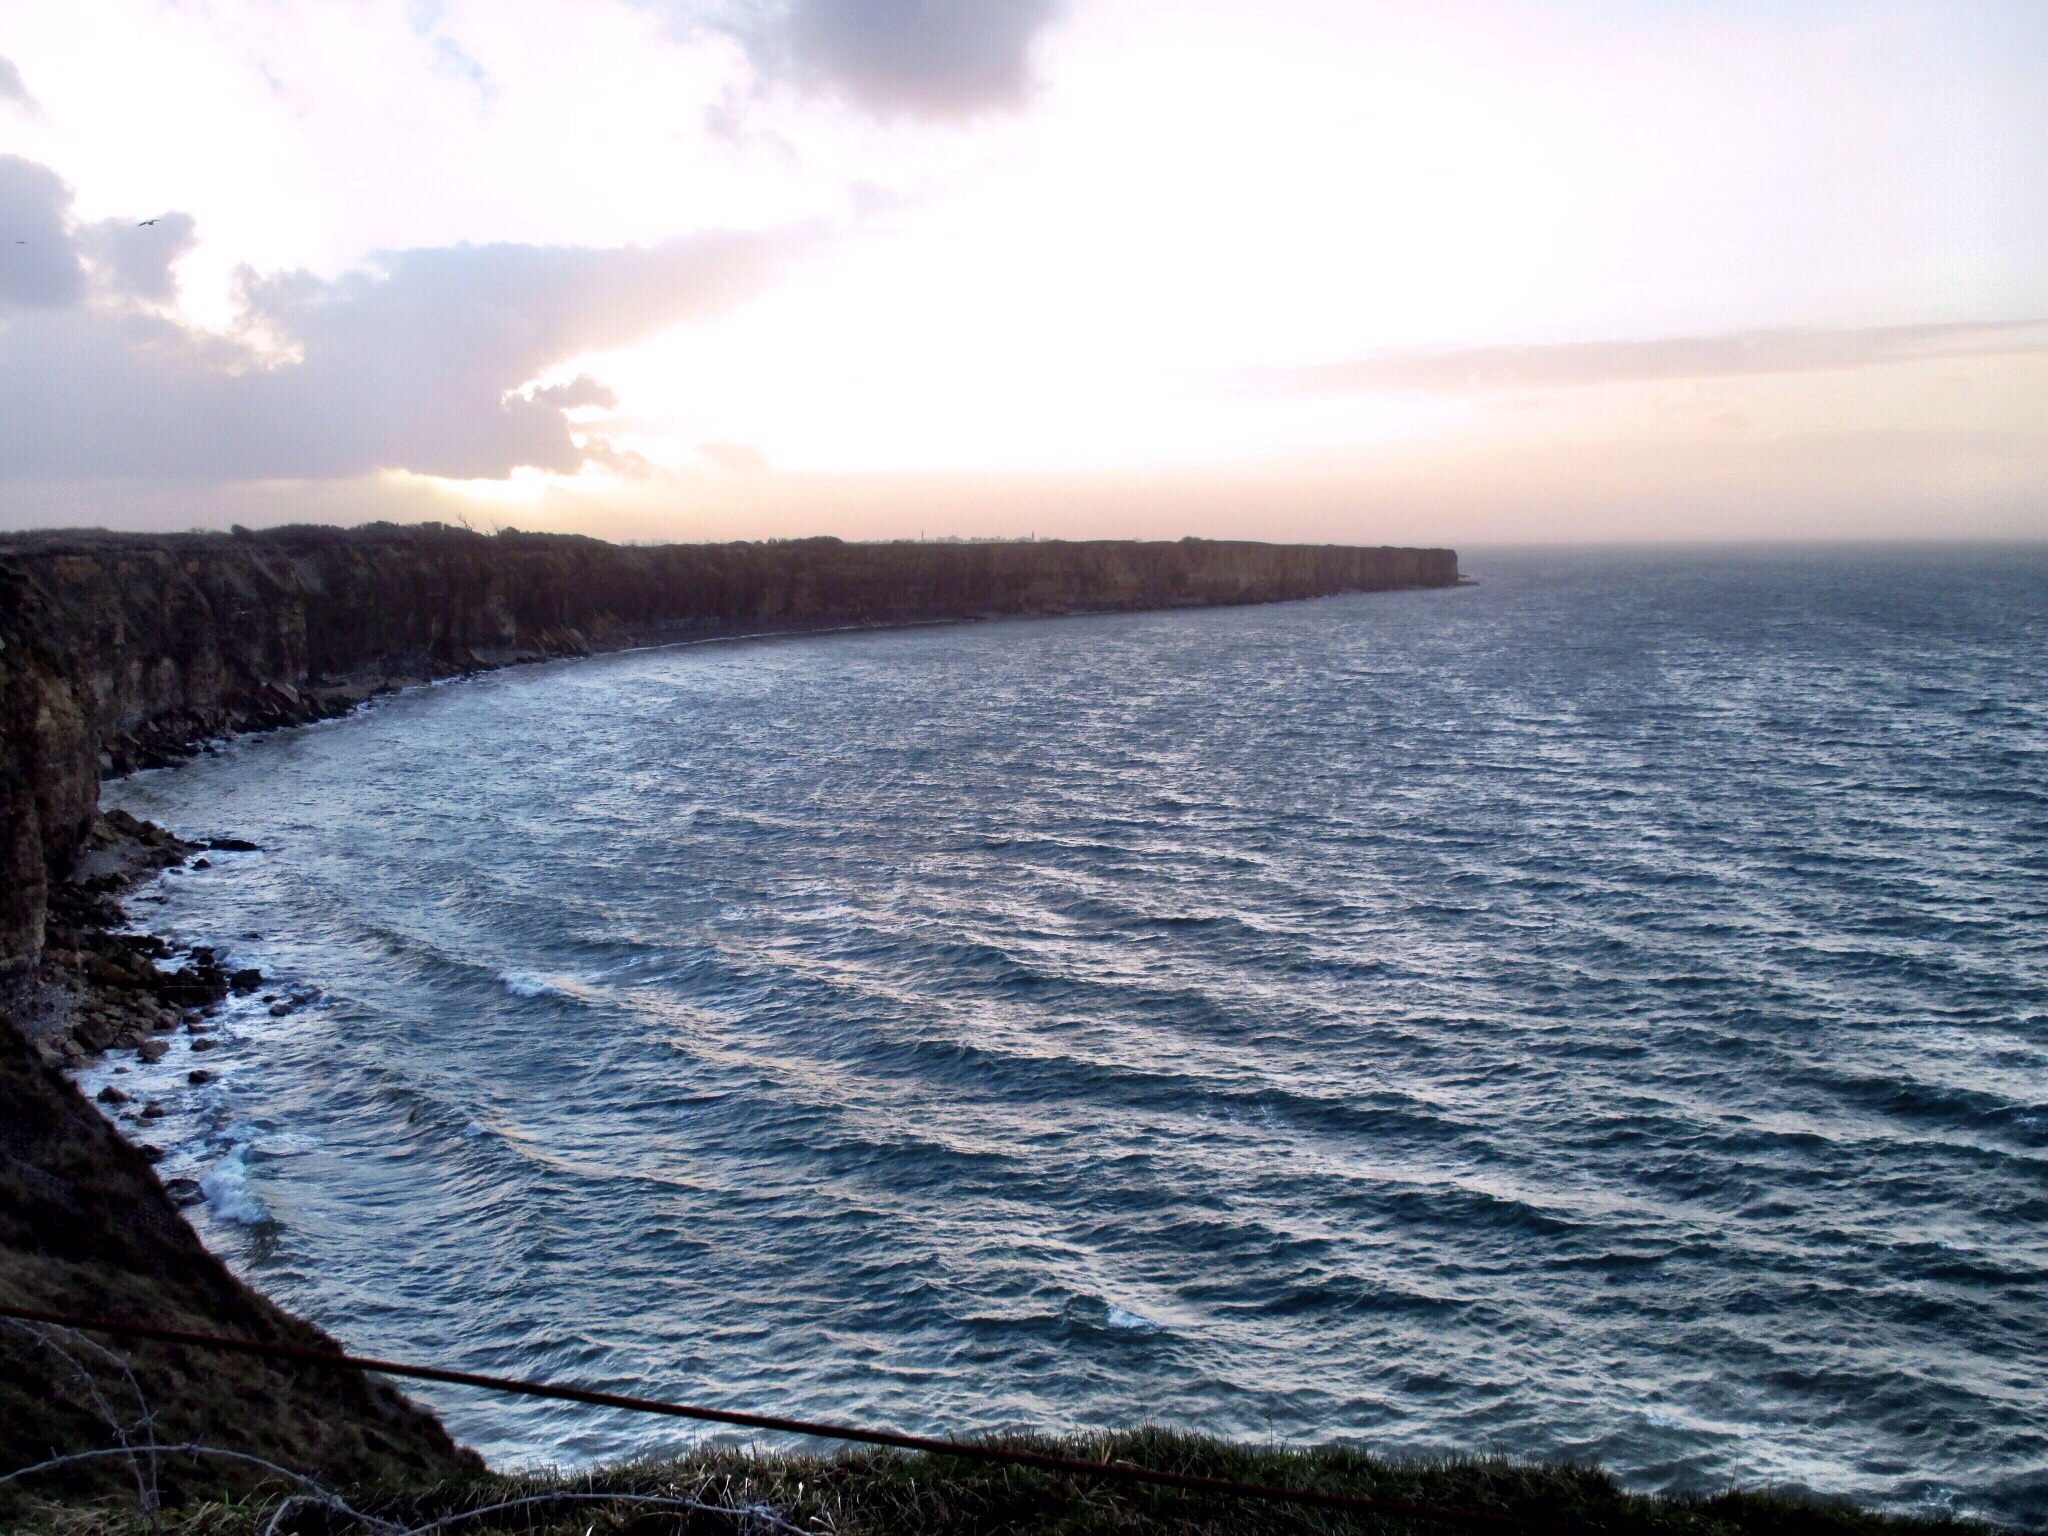 View west from Pointe-du-Hoc and the sheer cliff faces